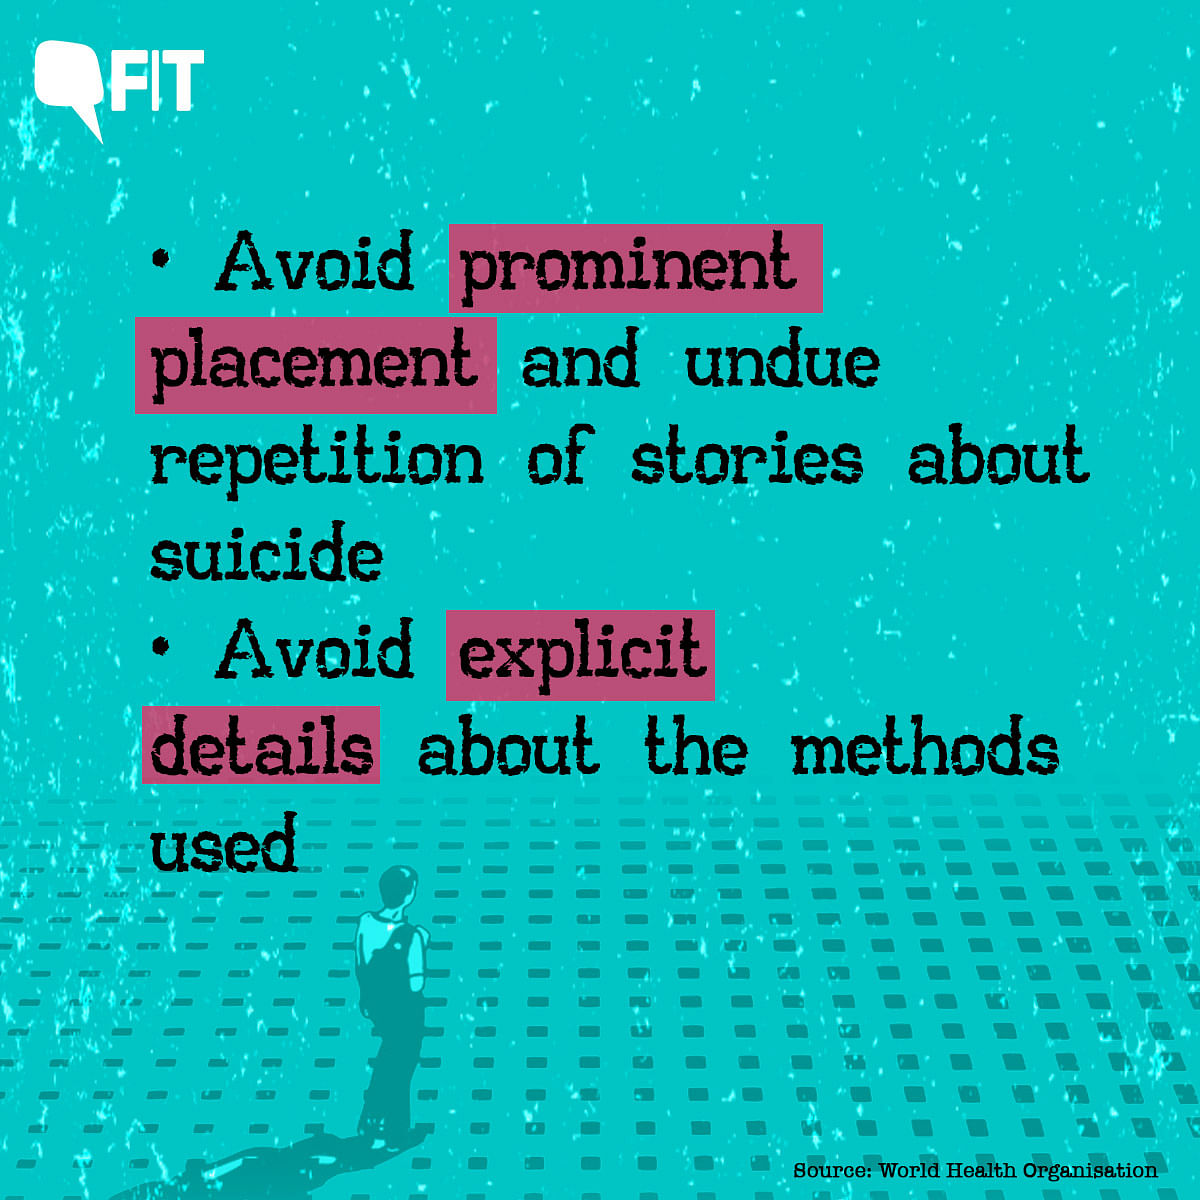 Part of the WHO Guidelines for Media on Suicide Reporting